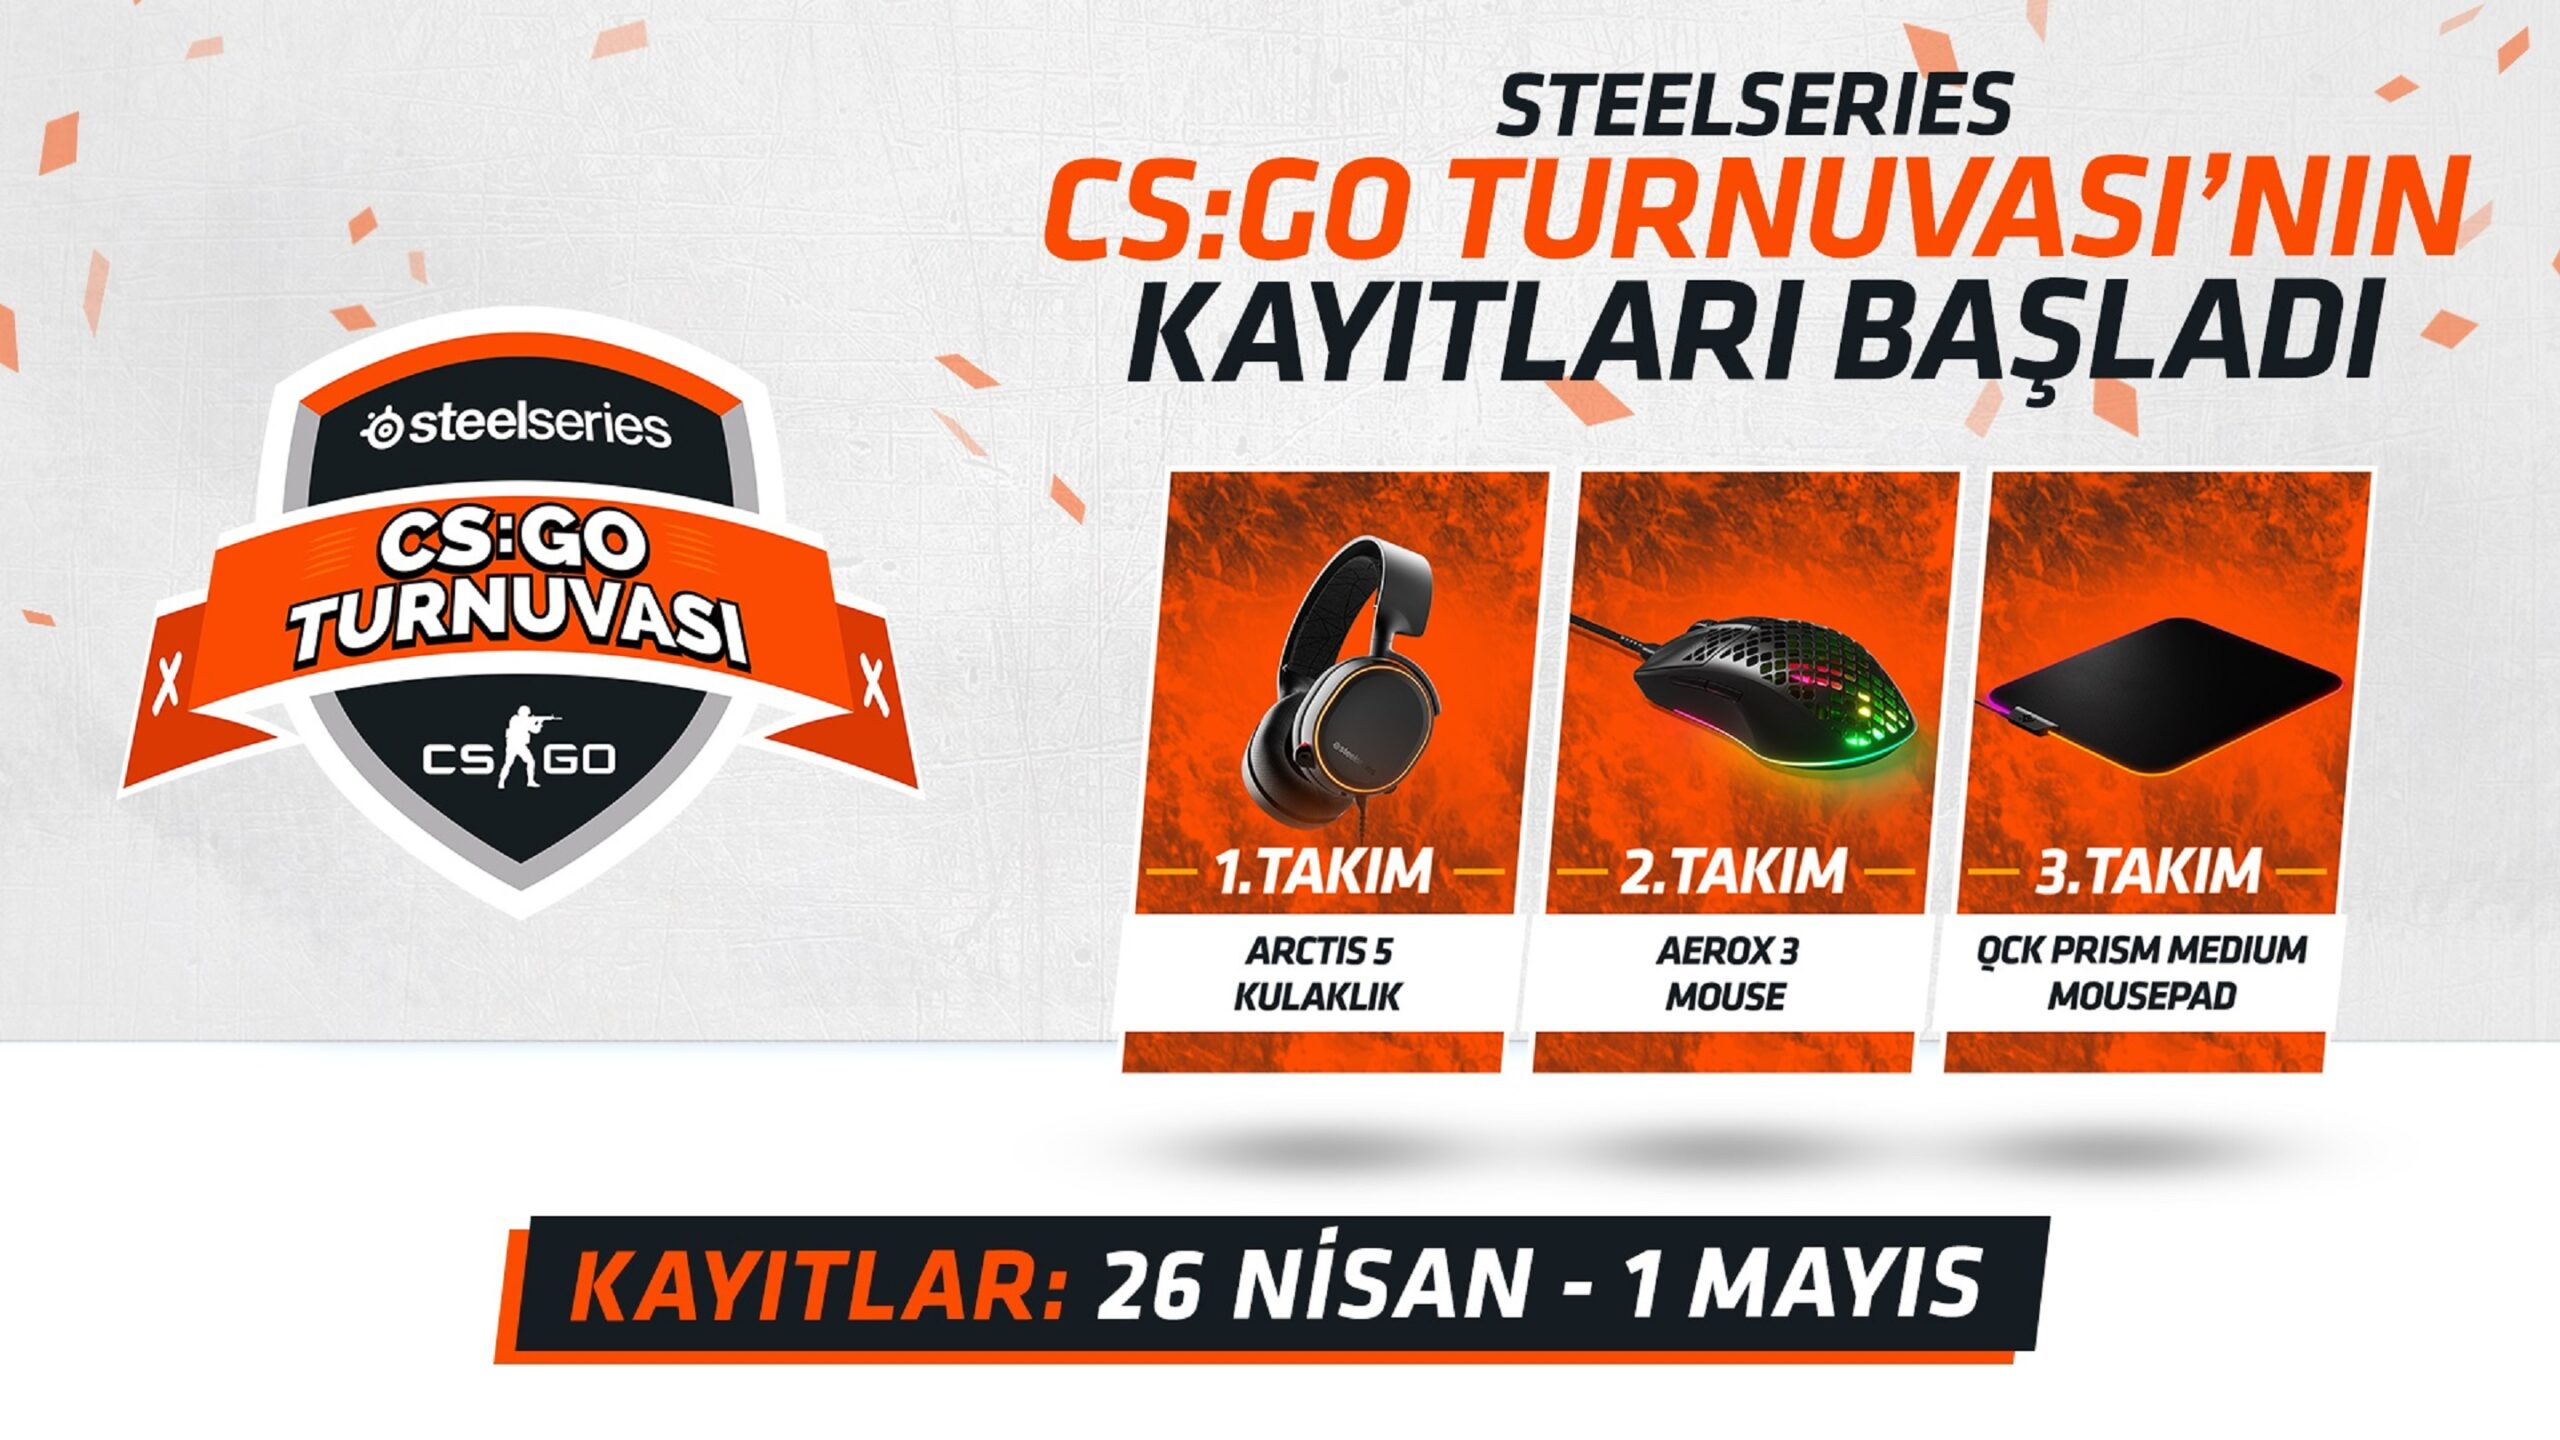 SteelSeries CS:GO Turnuvası